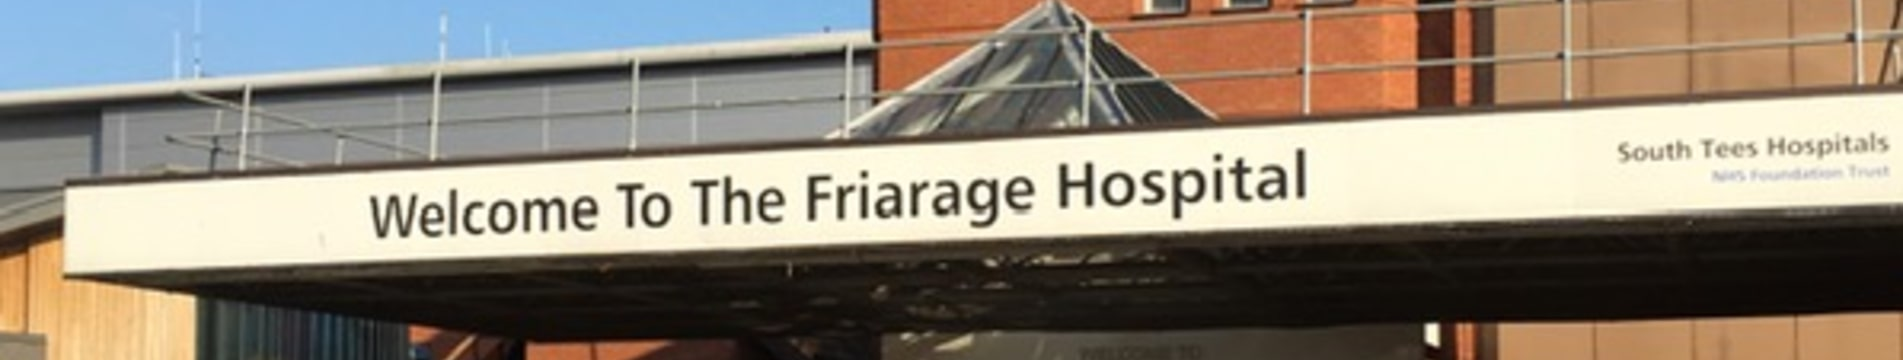 The Friarage